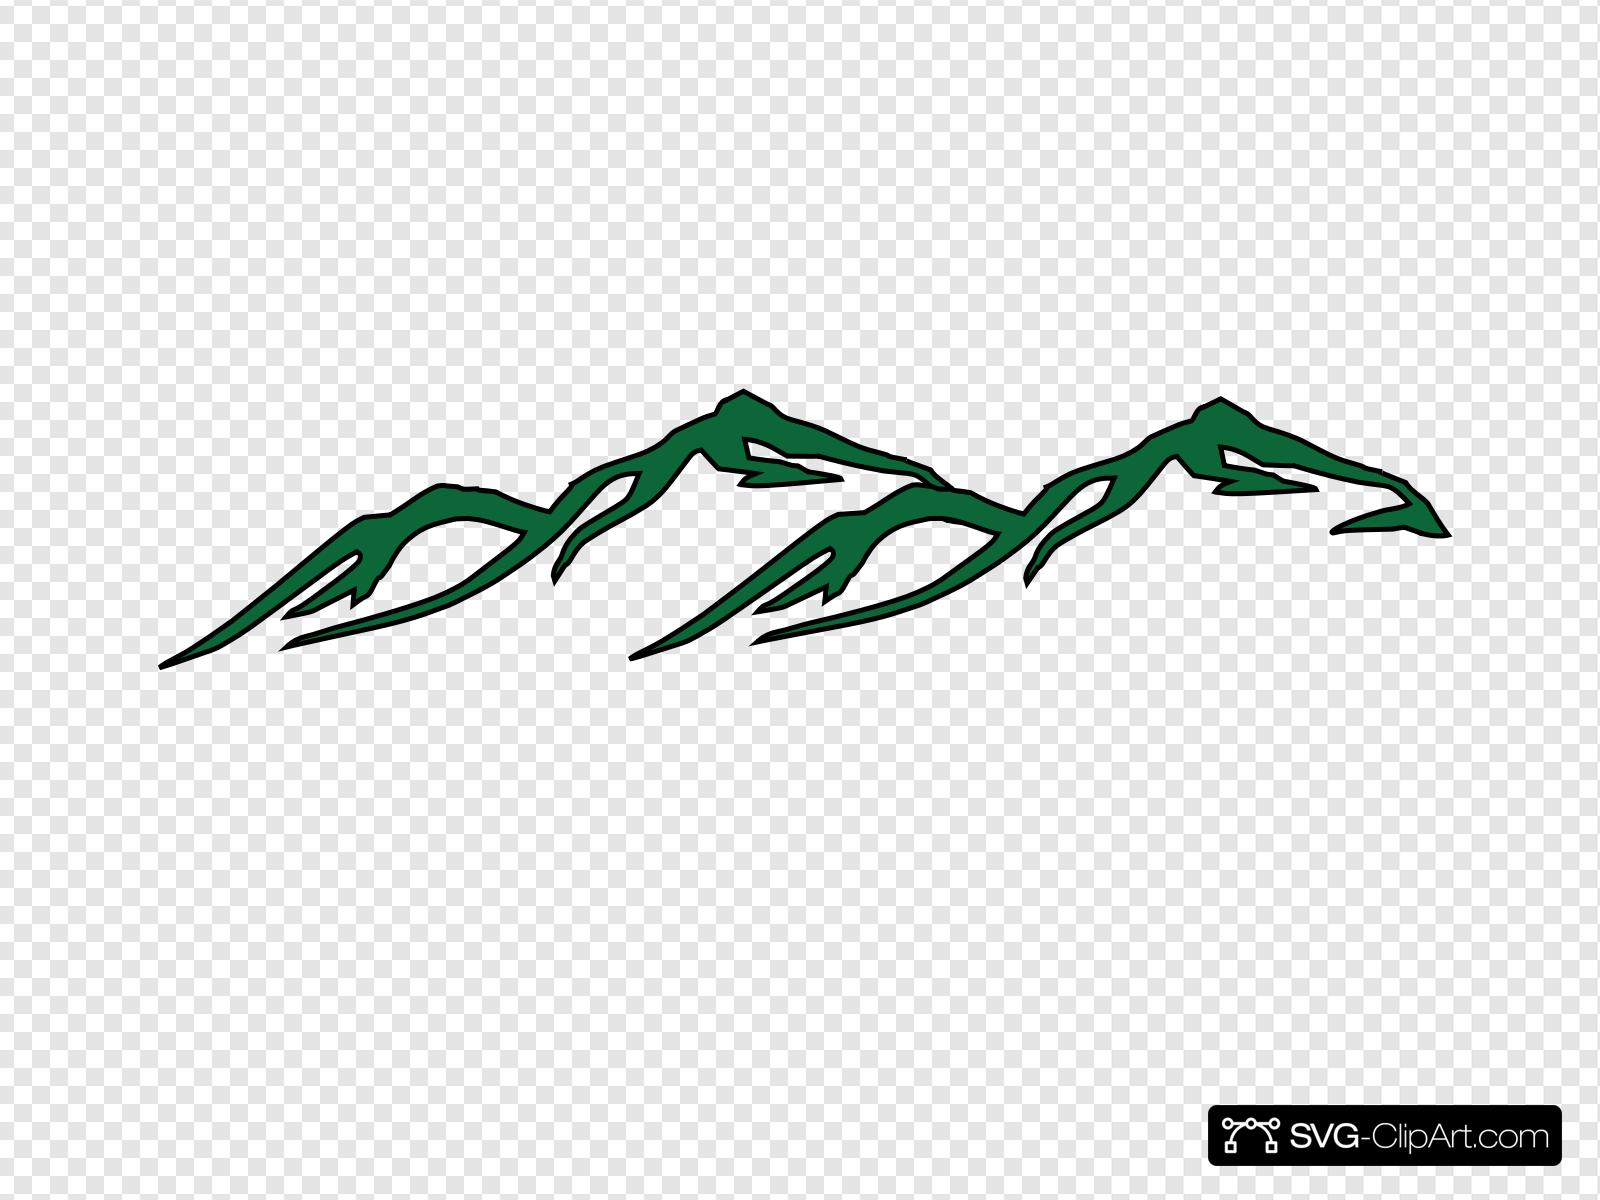 Hollister Hills Clip art, Icon and SVG.